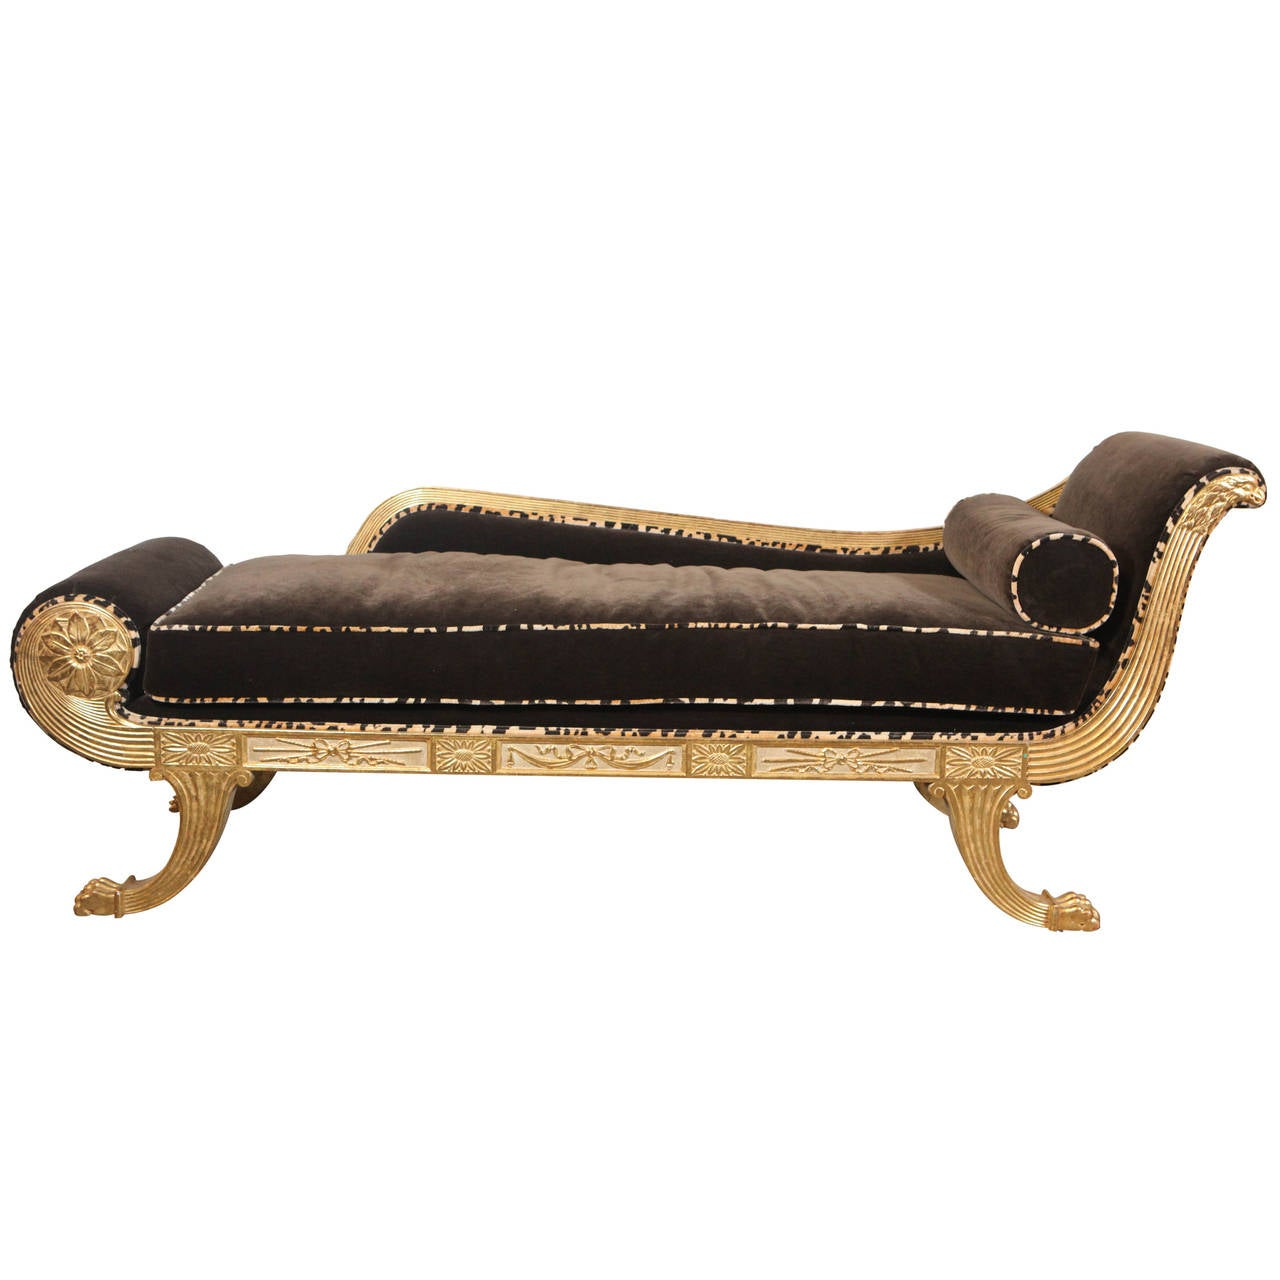 19th century chaise longue for sale at 1stdibs